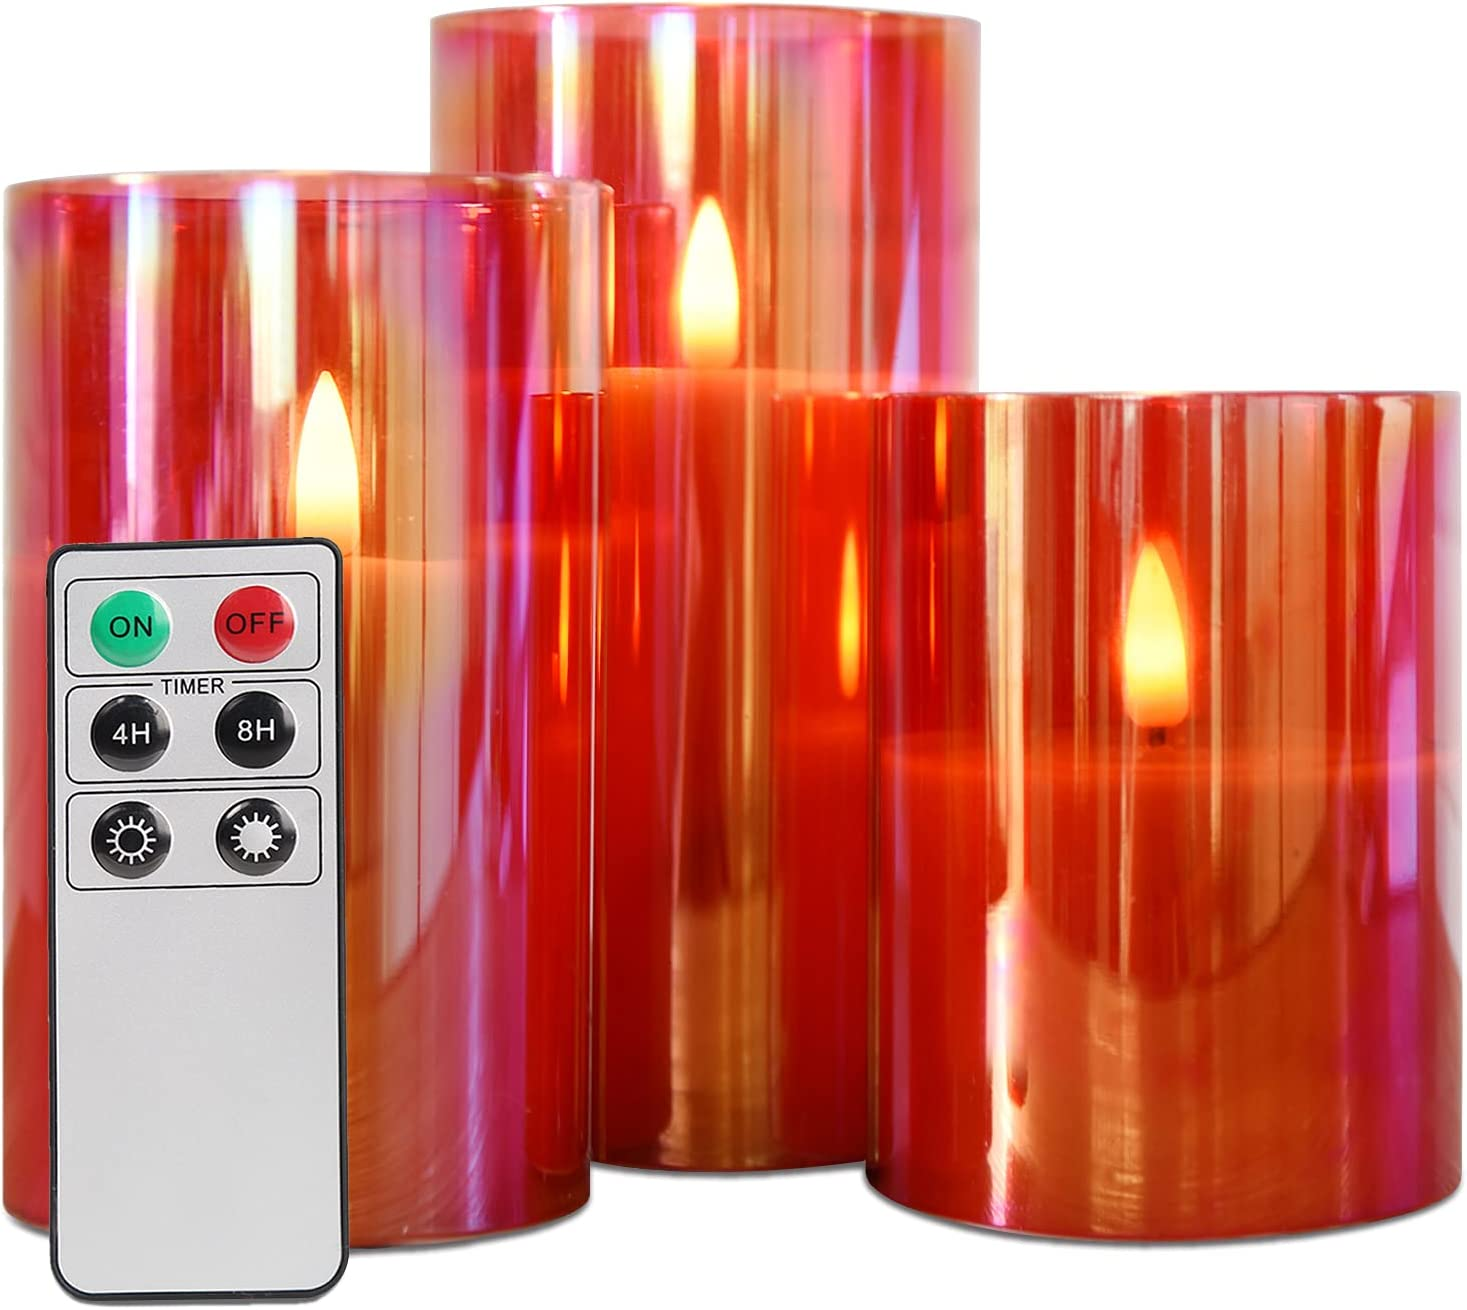 Eywamage Red Glass Flickering Flameless Candles with Remote, Black Wick Realistic LED Battery Candles Set 3 Inch Wide 4 5 6 inch Tall